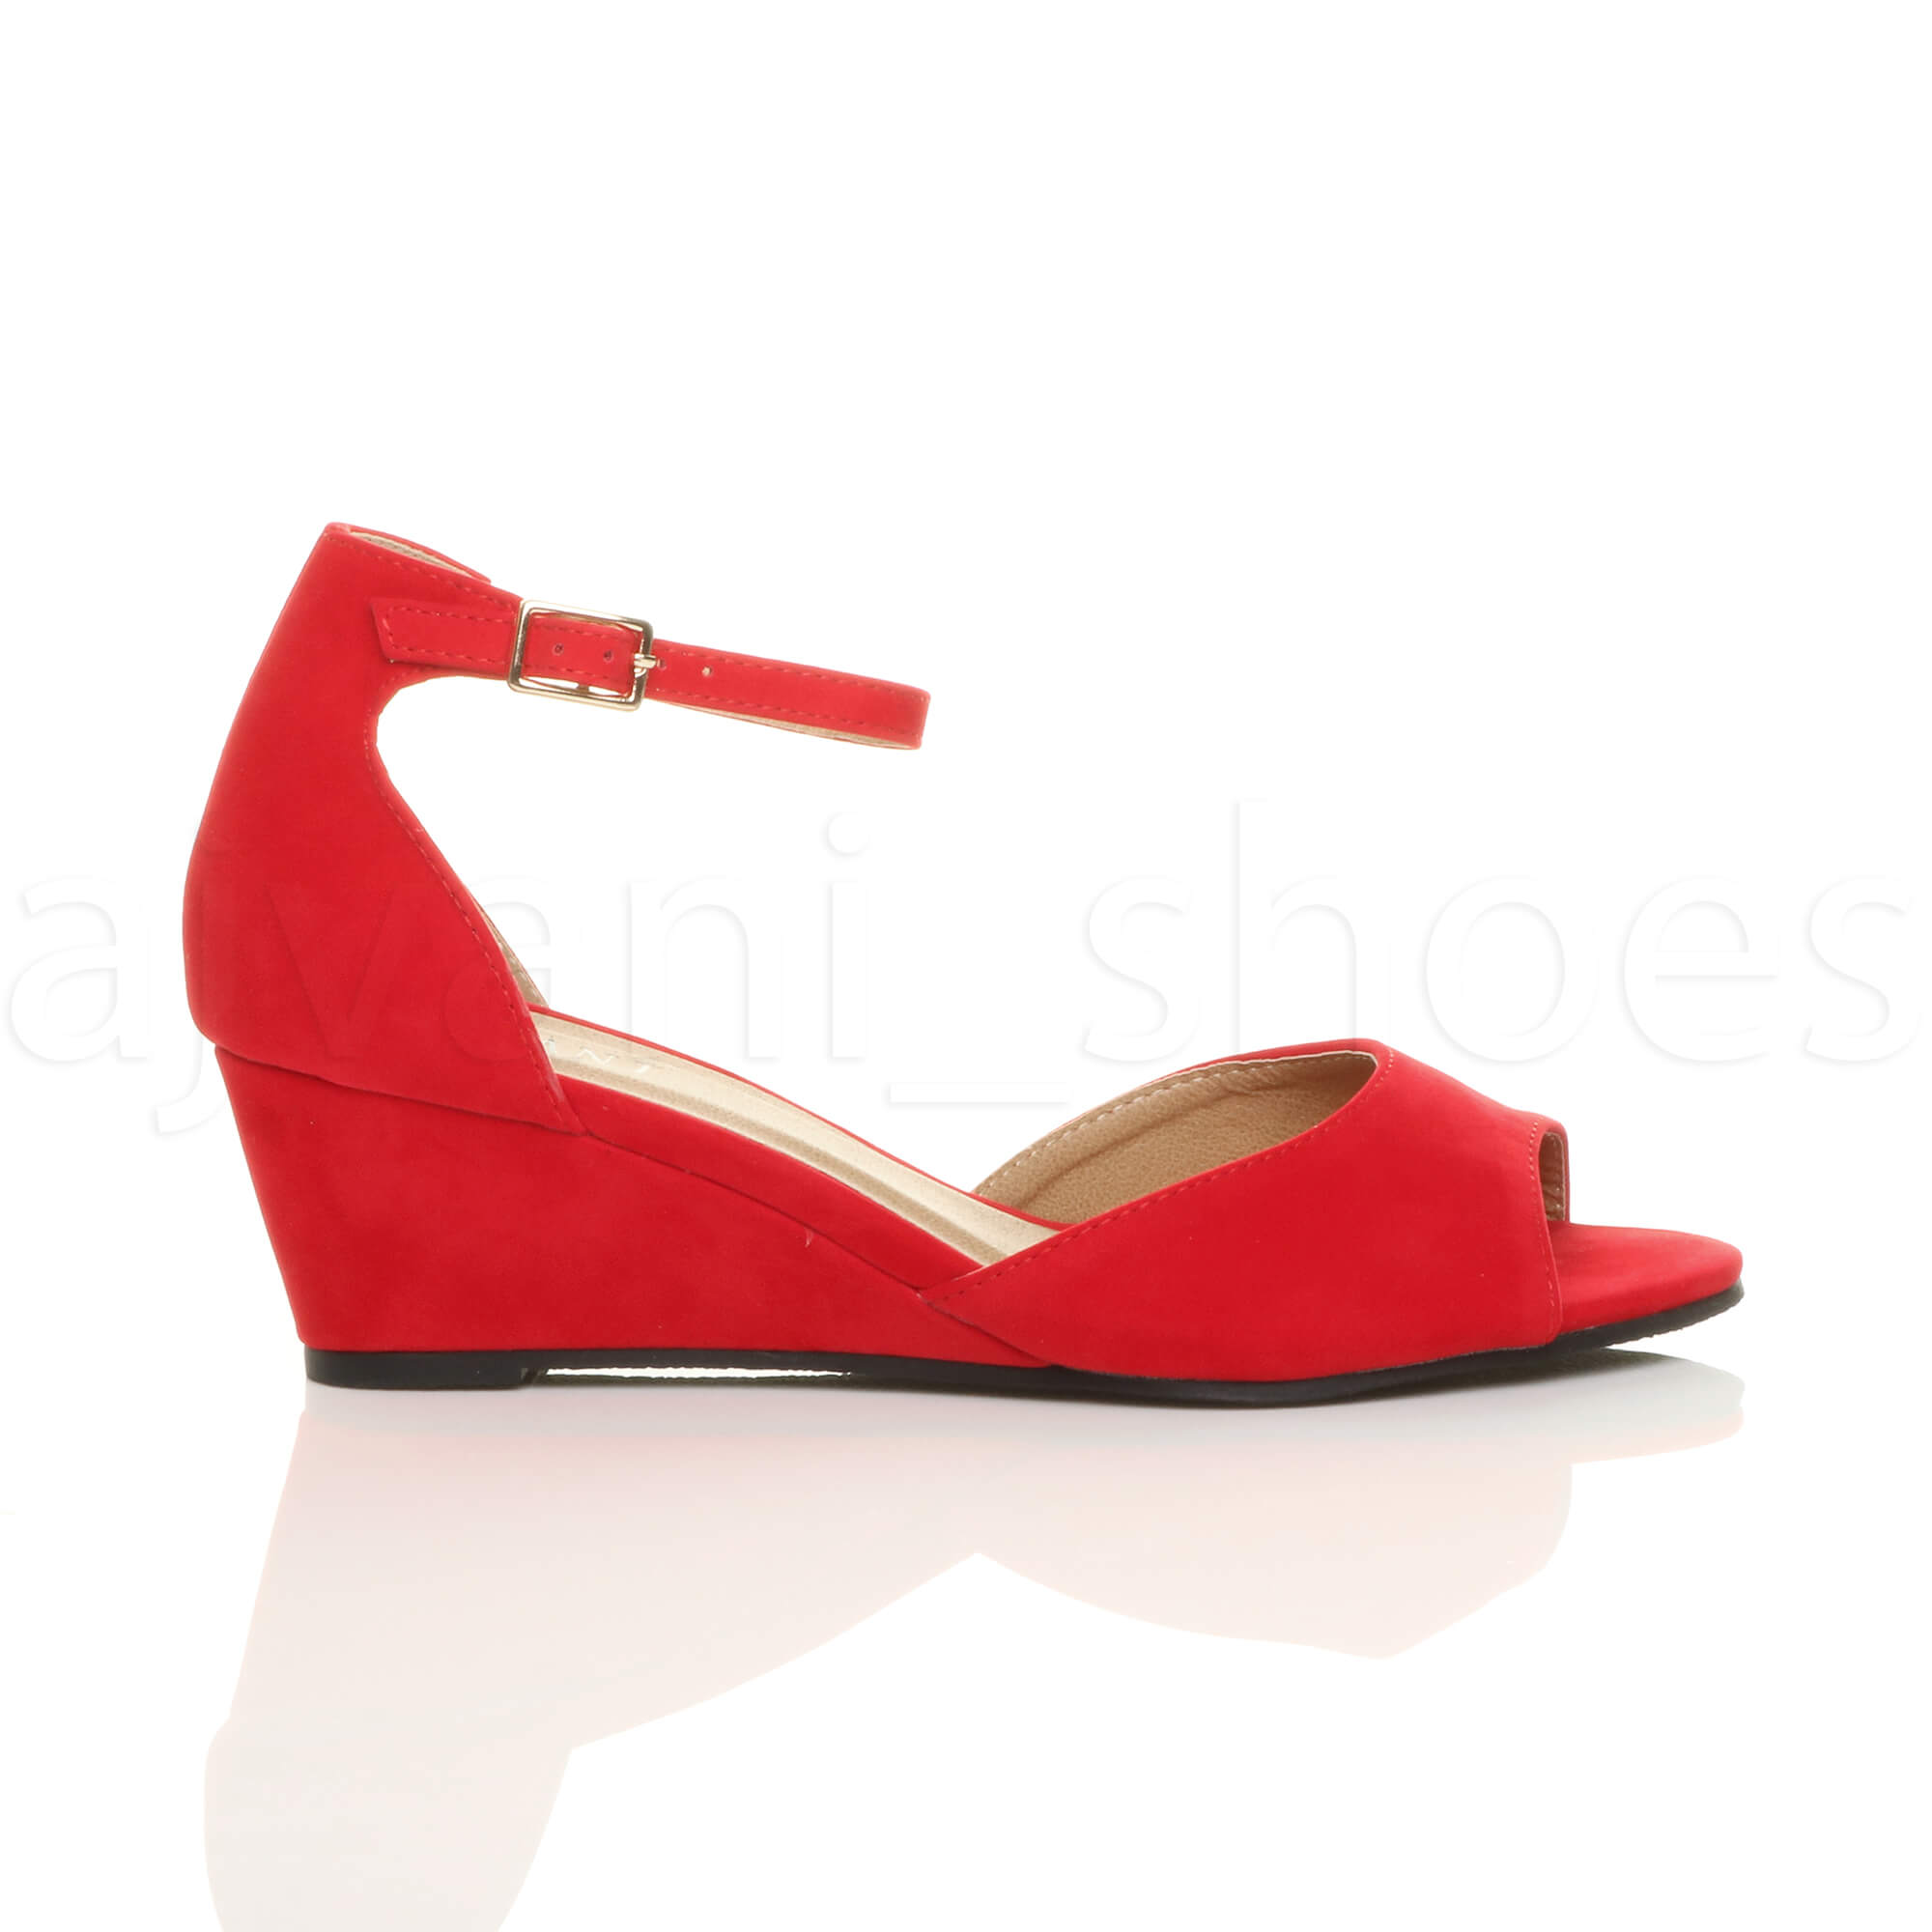 WOMENS-LADIES-LOW-MID-WEDGE-HEEL-ANKLE-STRAP-SMART-CASUAL-EVENING-SANDALS-SIZE thumbnail 123